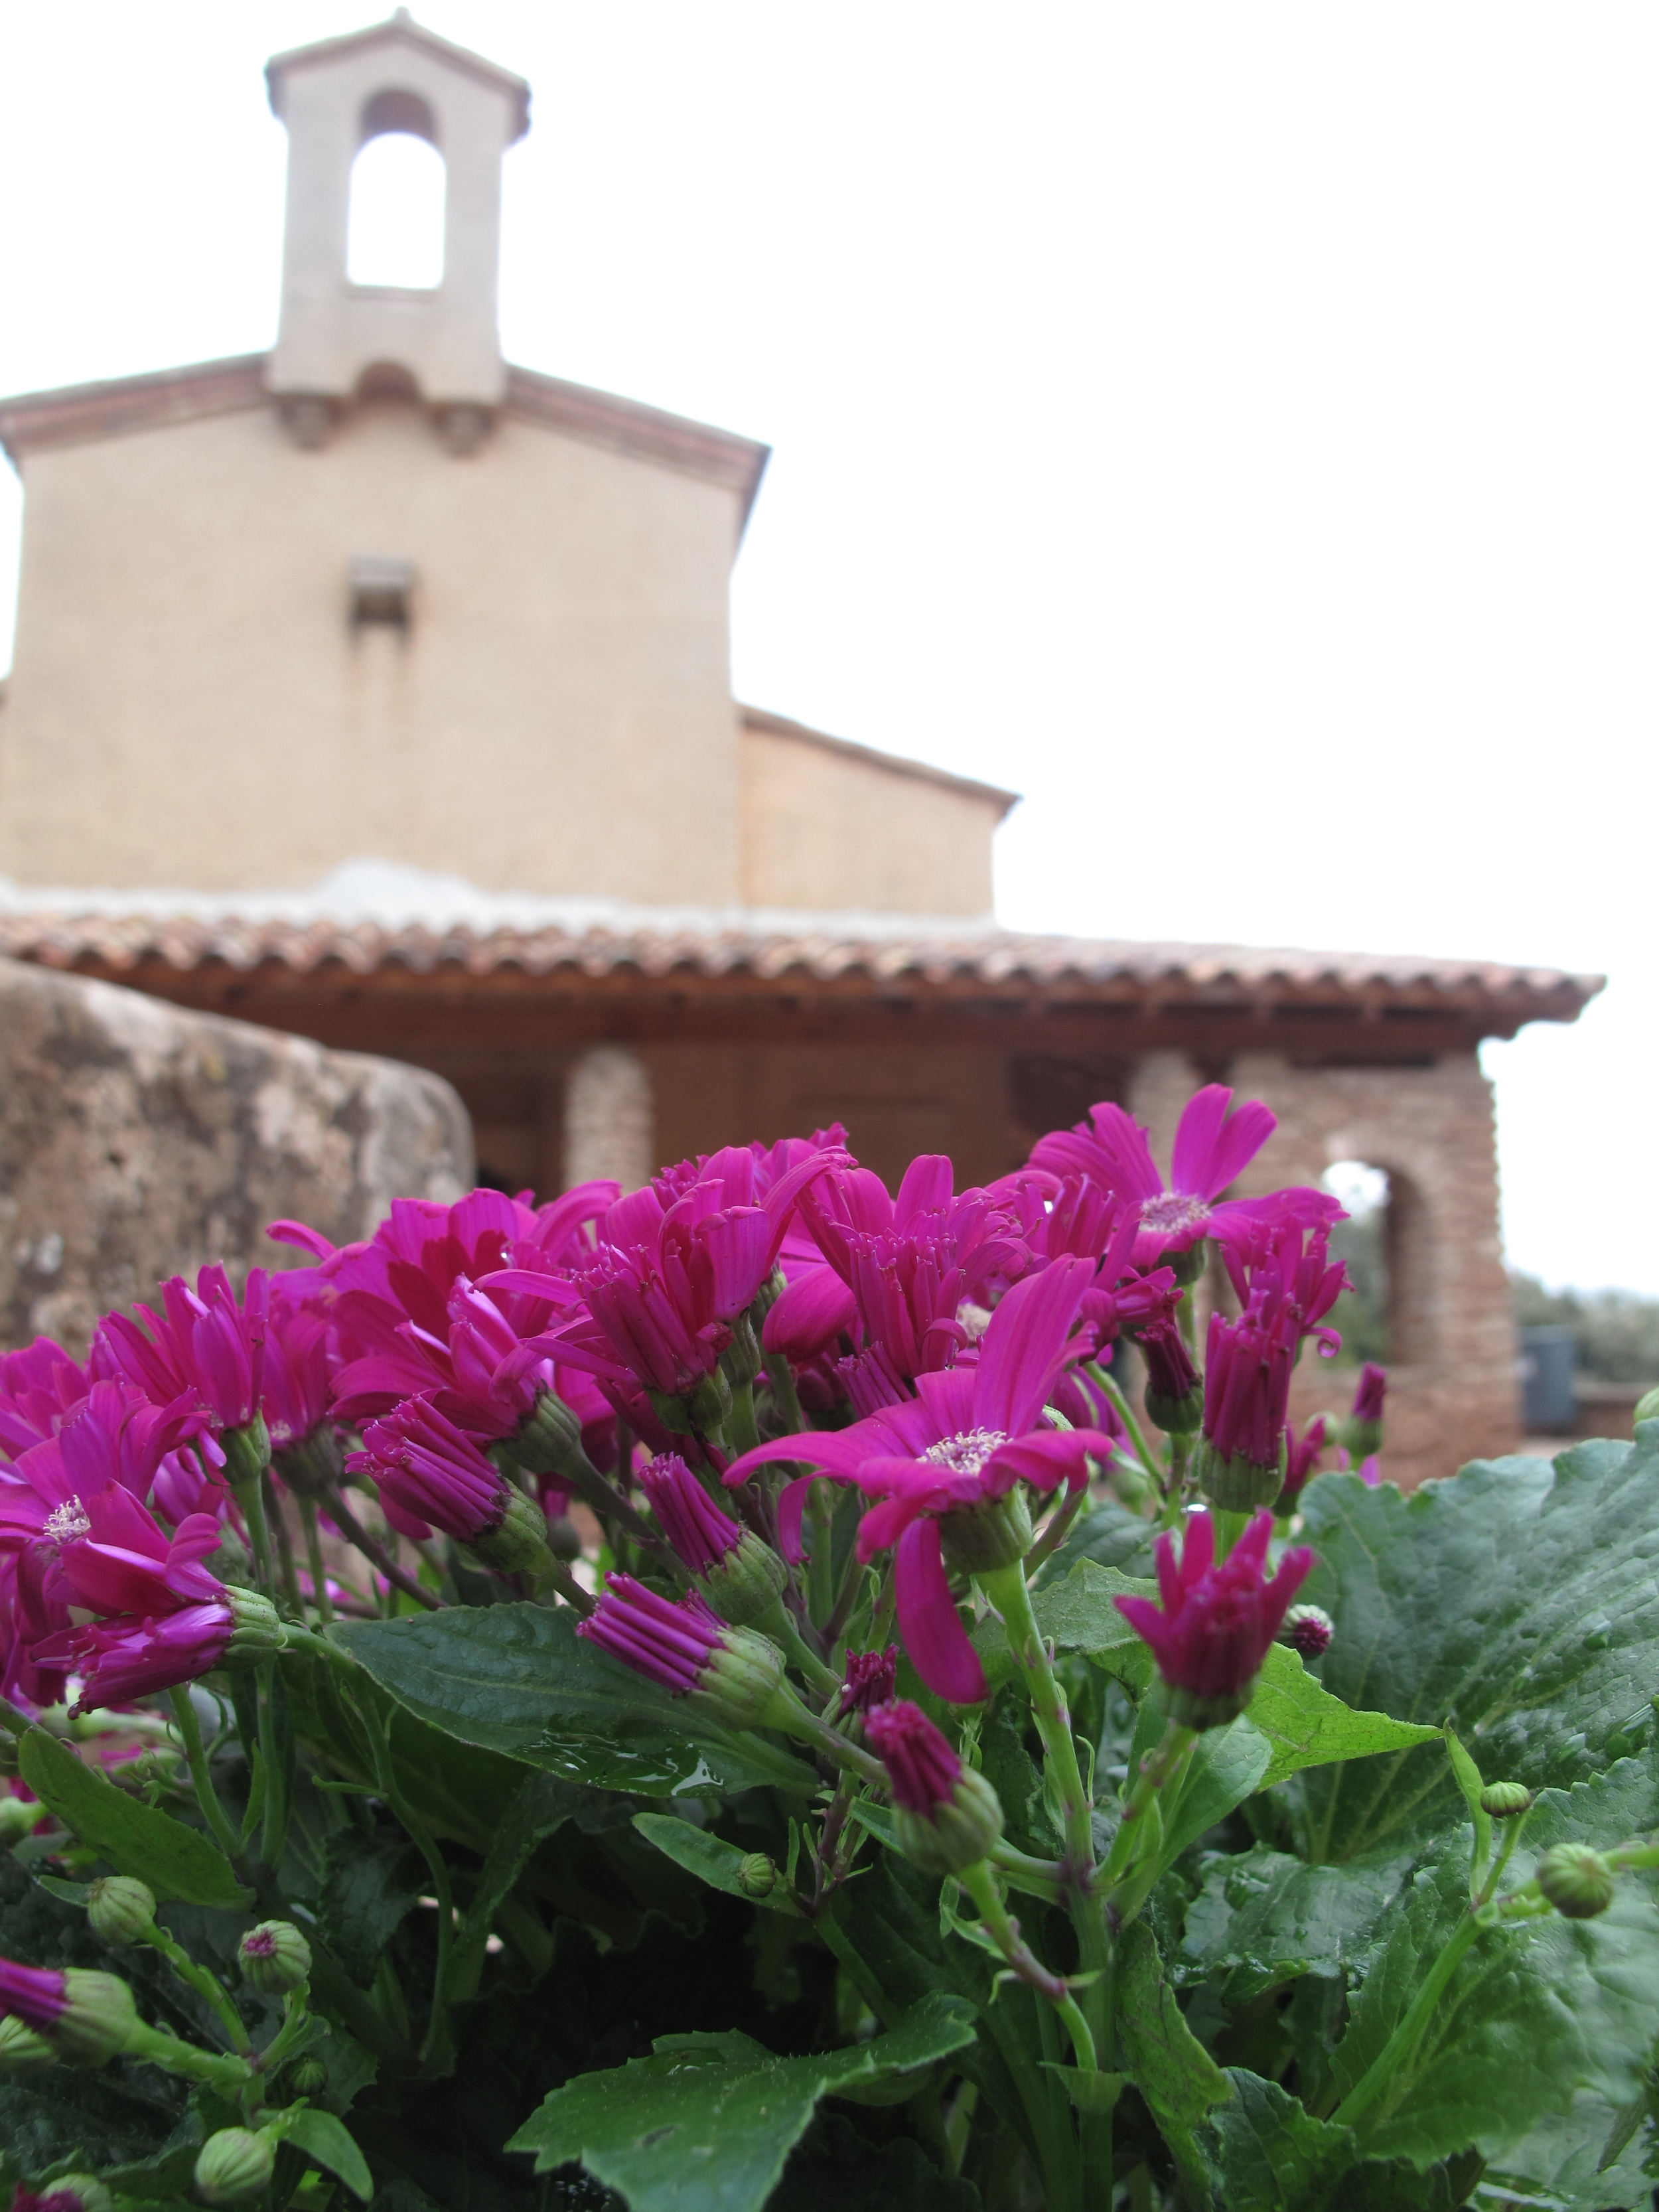 Small building of the monastery on the mountain of Montserrat